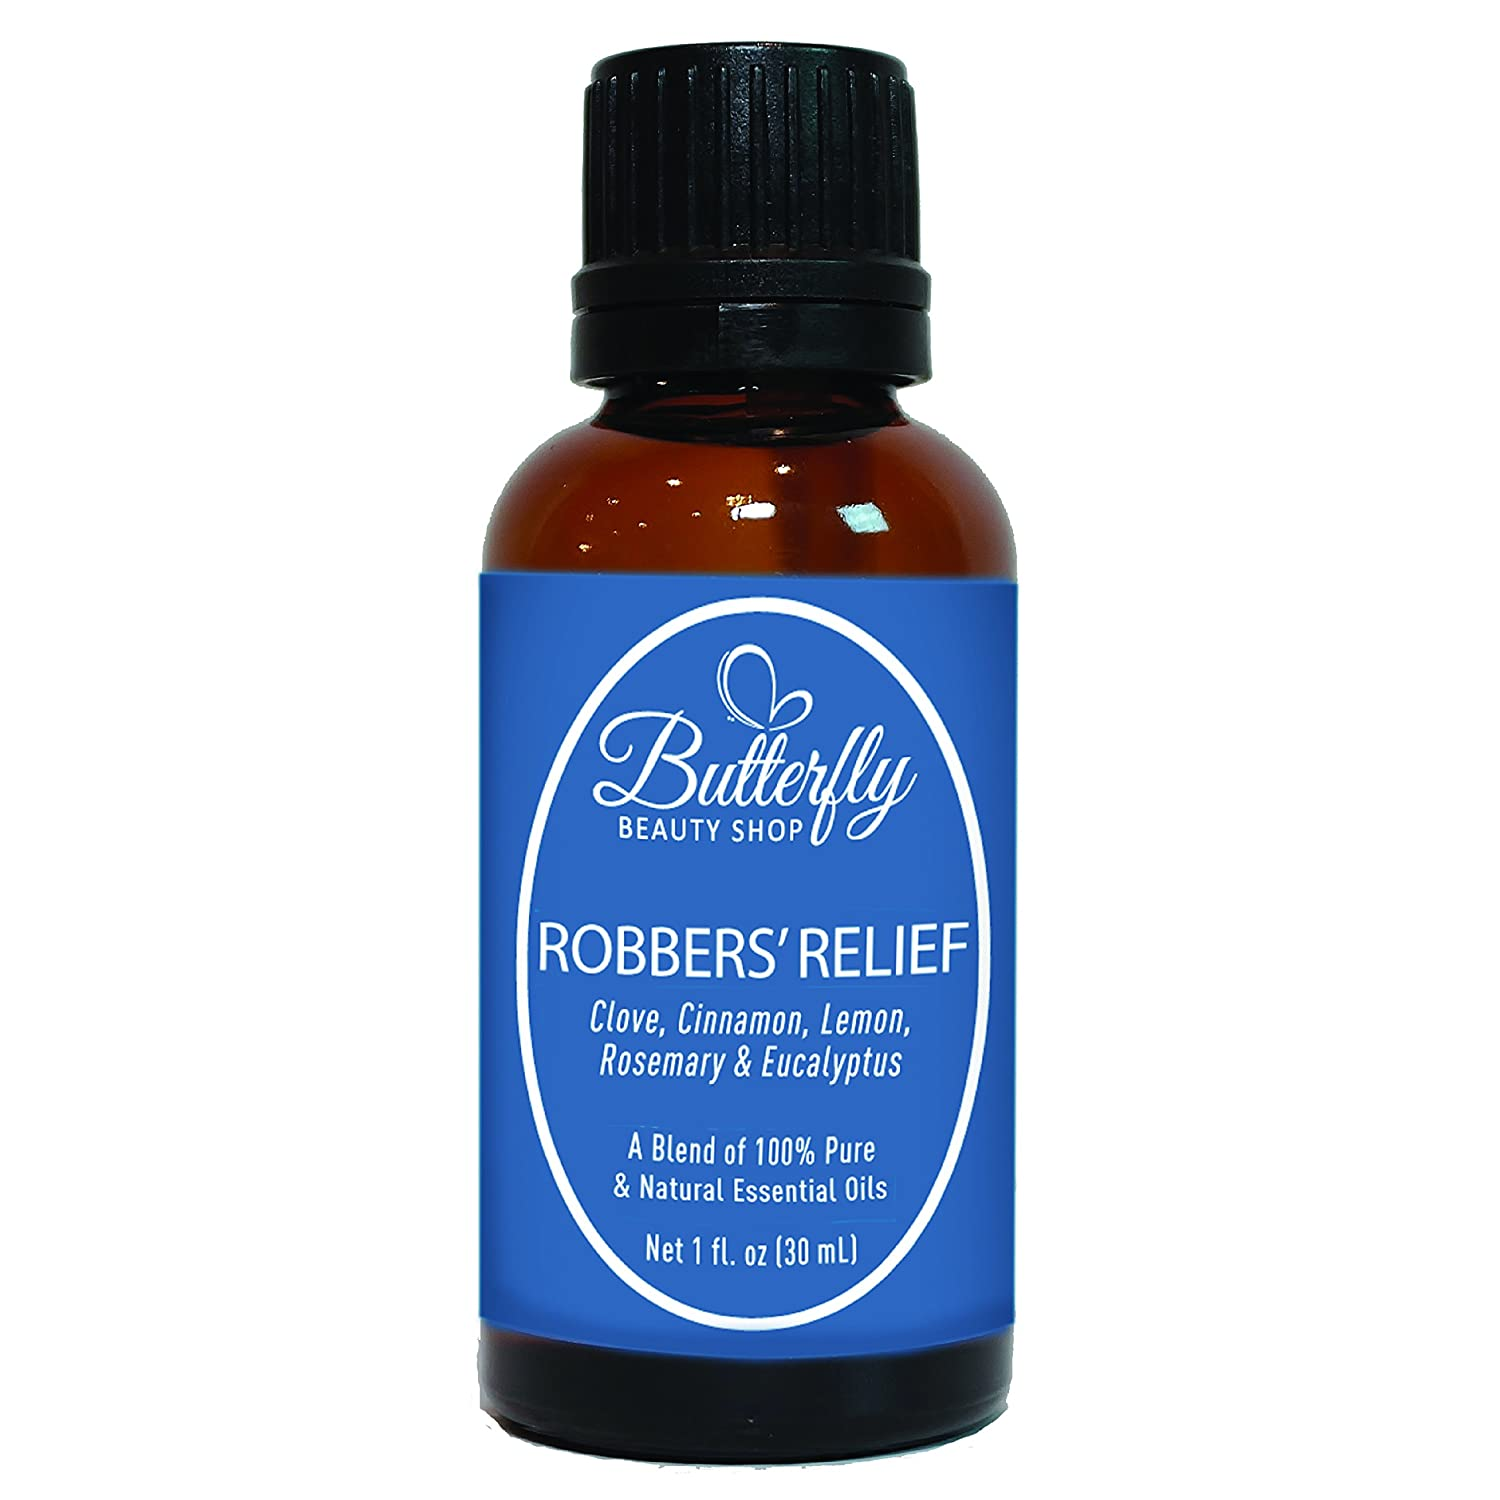 Robbers' Relief: 30mL. (Compare to Thieves by Young Living). A Powerful & Therapeutic Combination of 5 Essential Oils: Clove, Cinnamon, Lemon, Rosemary & Eucalyptus Butterfly Beauty Shop